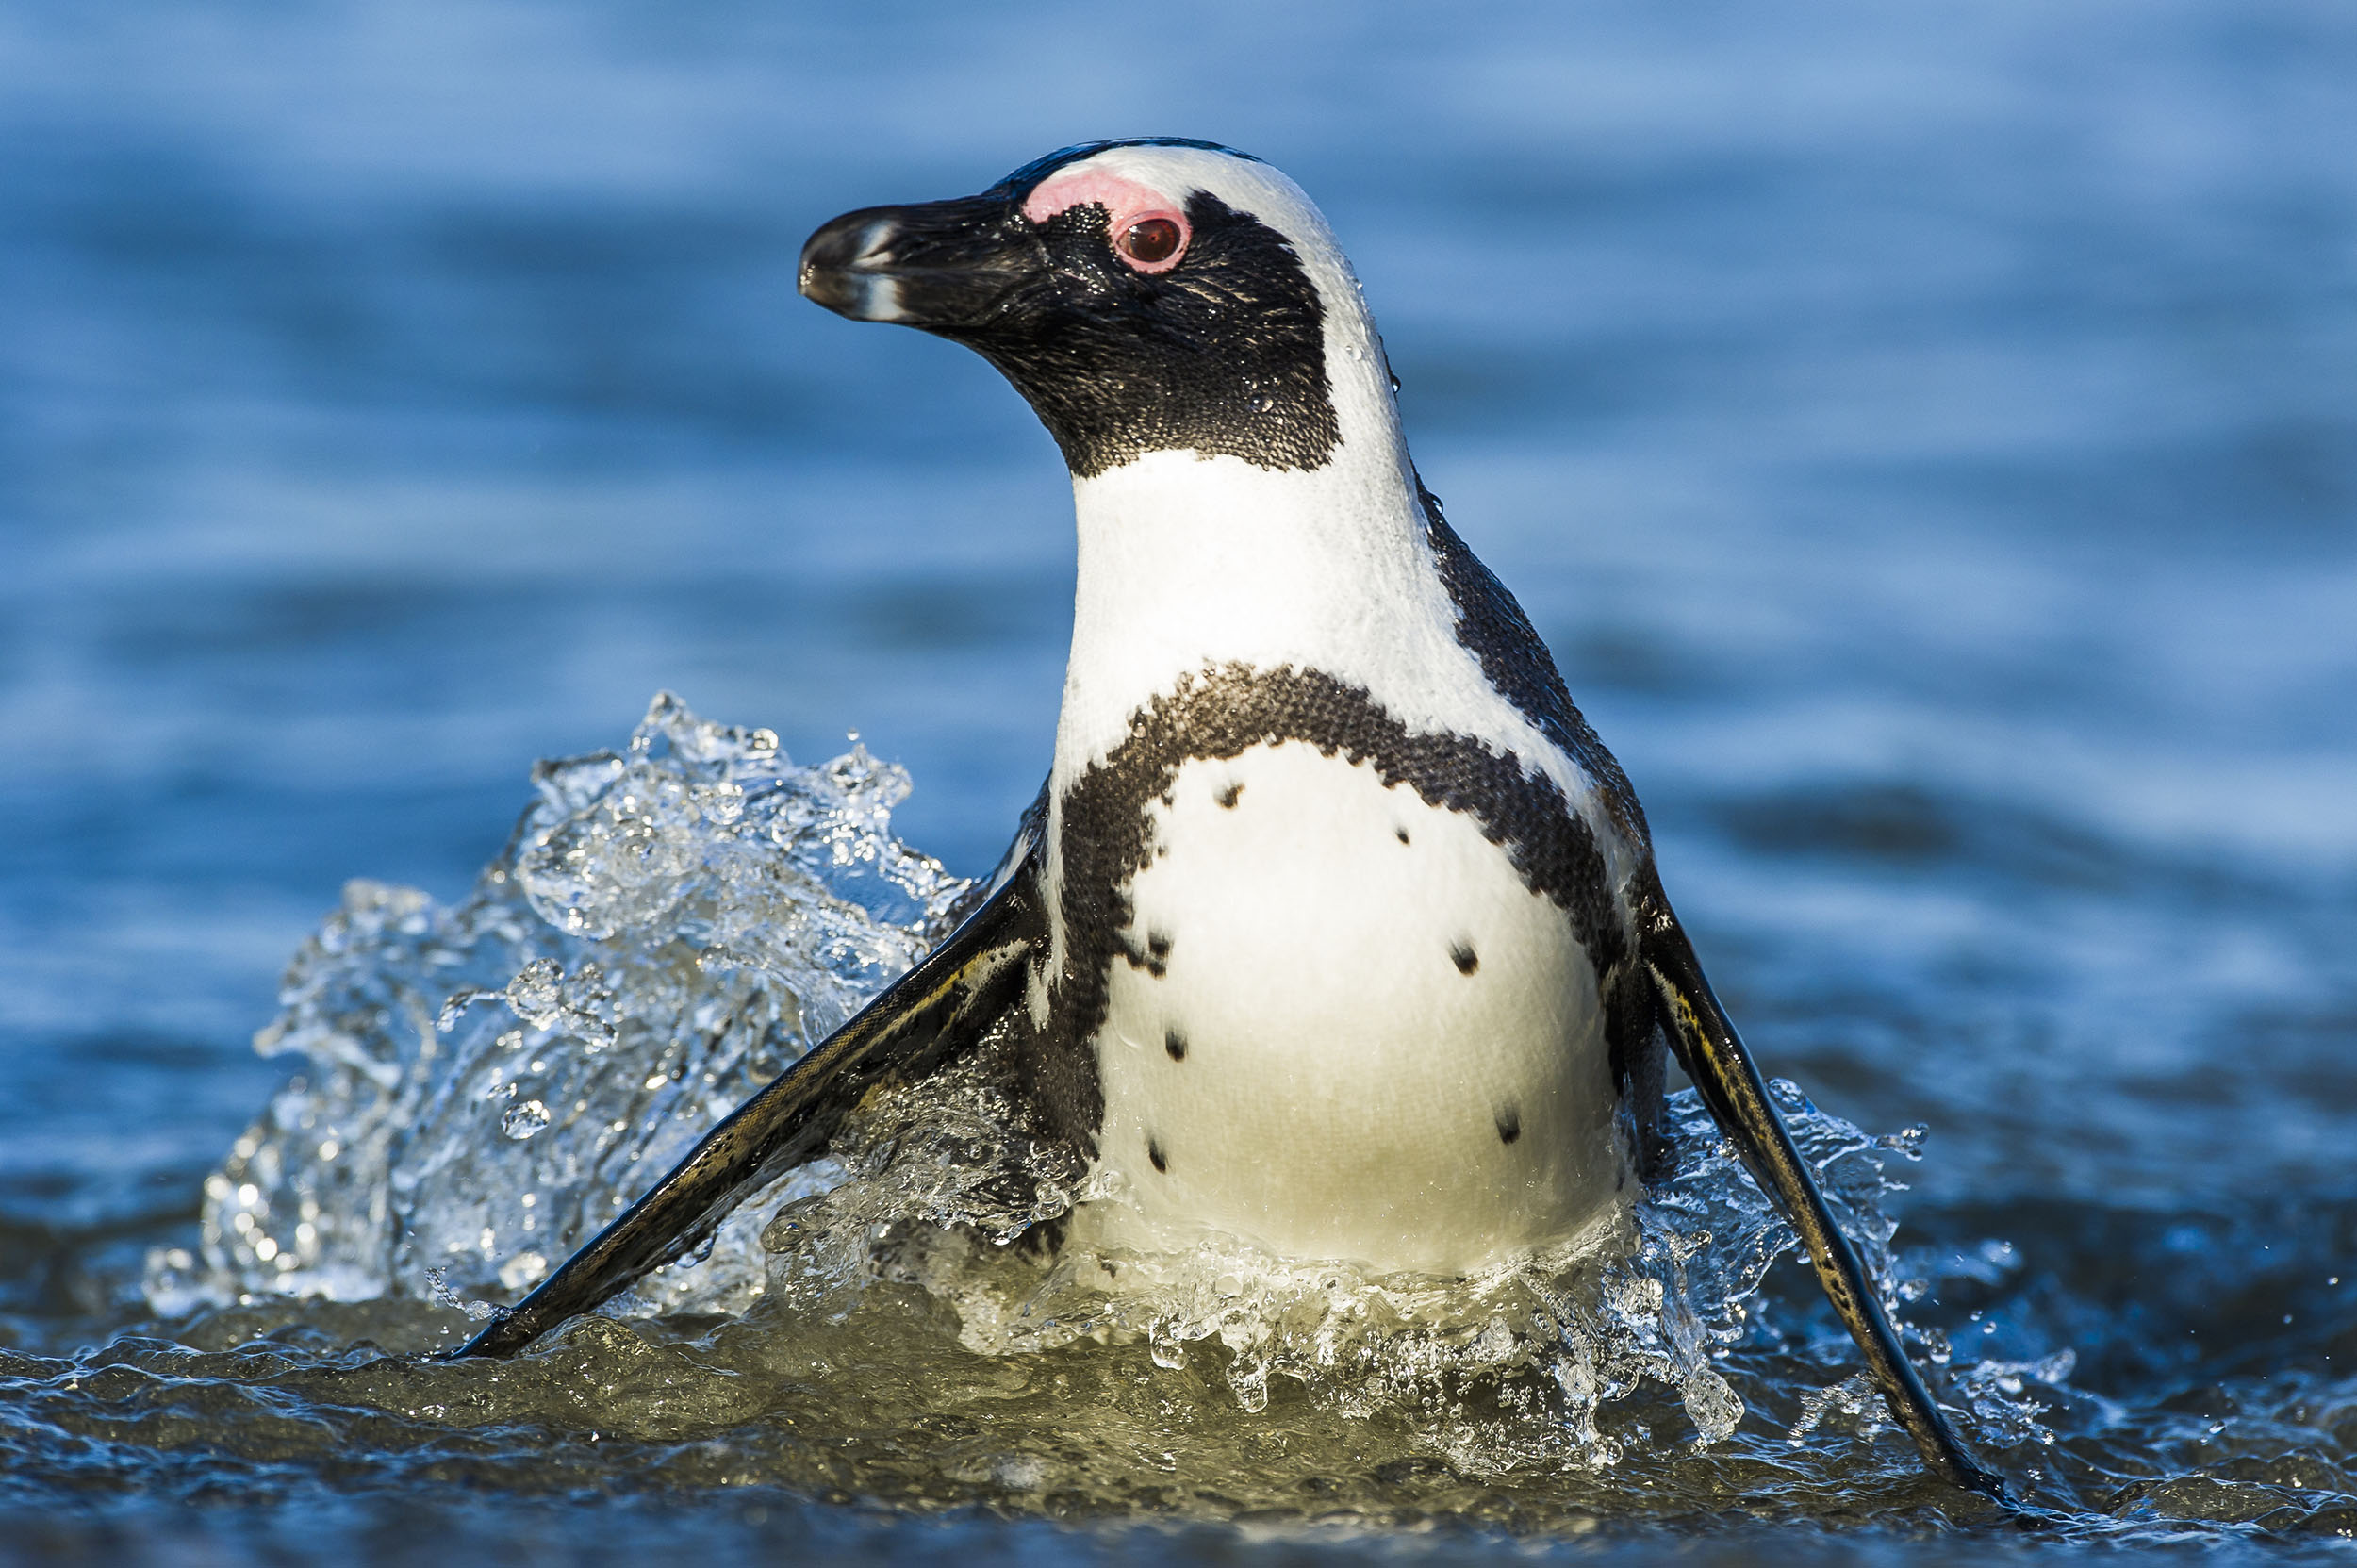 marine-protected-areas-south-africa-species-Peter-Chadwick.jpg